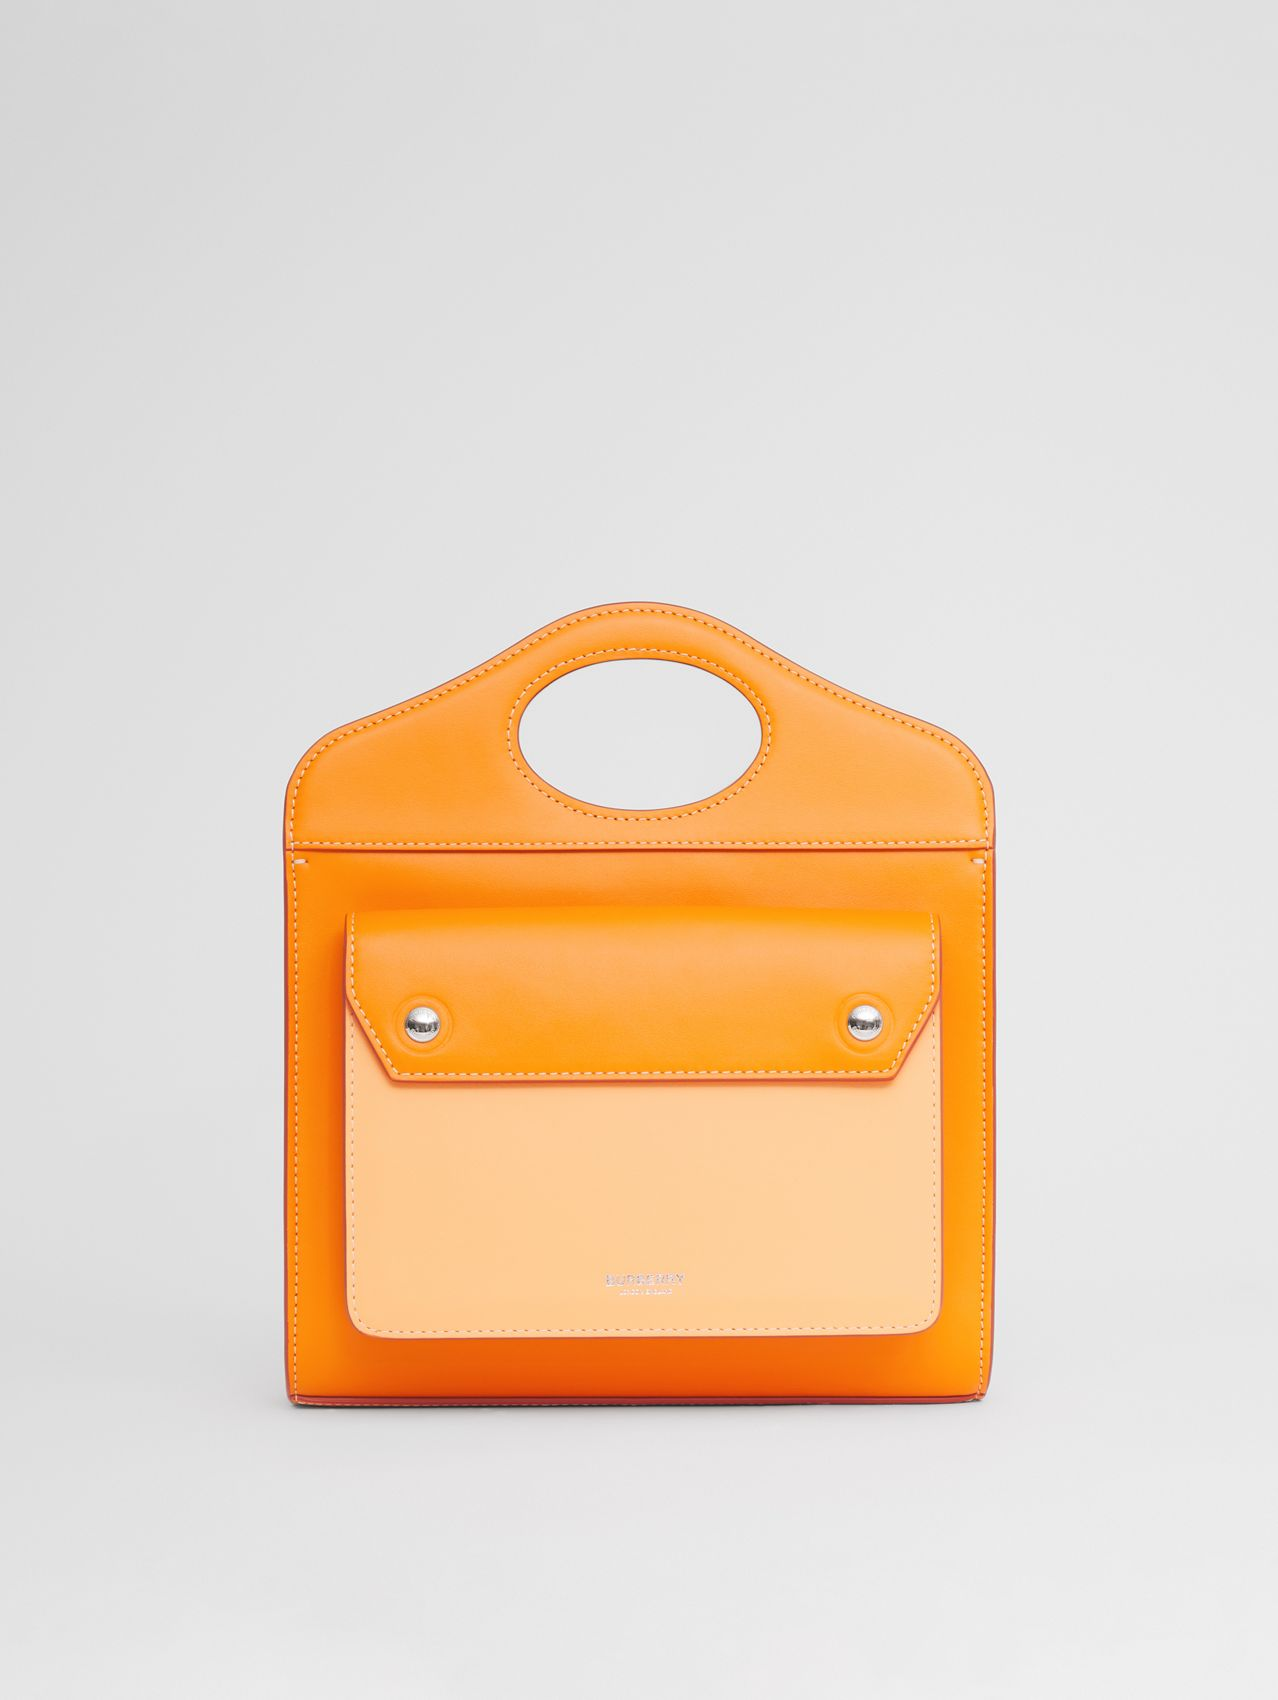 Mini Two-tone Leather Pocket Bag in Deep Orange/amber Orange